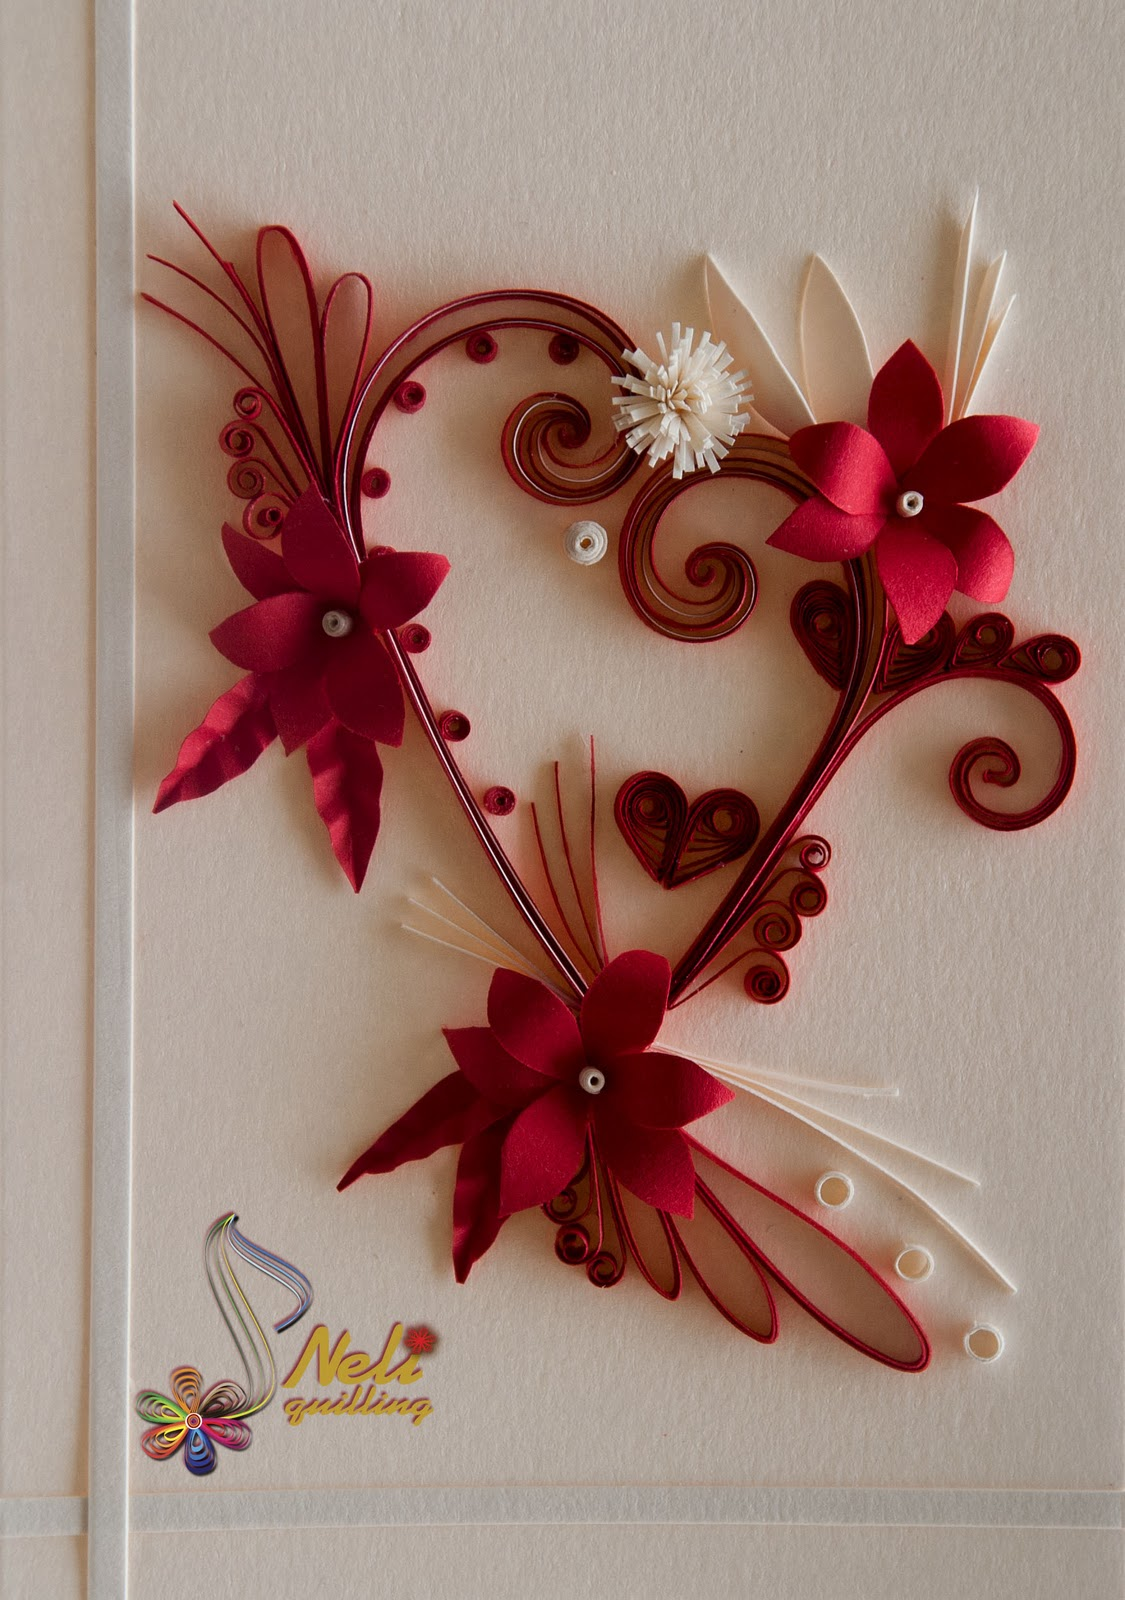 Neli quilling art quilling cards with love 2 for Quilling paper art